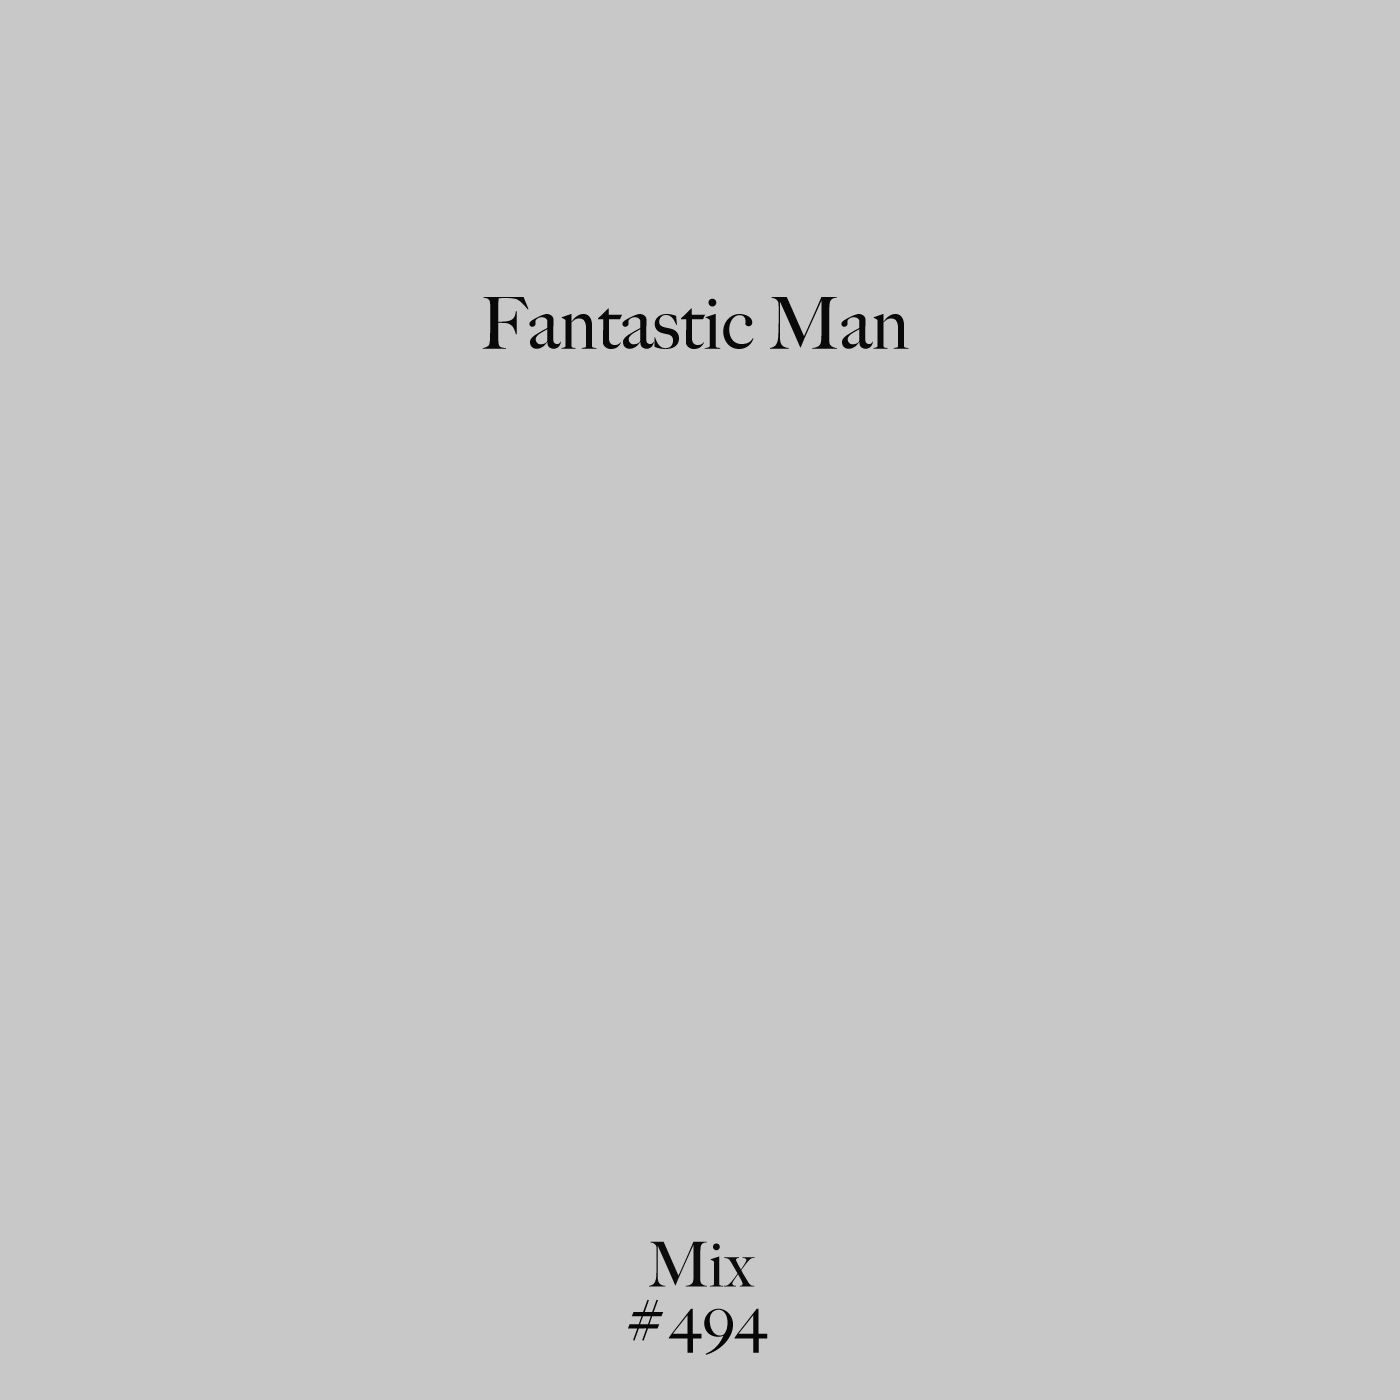 Fantastic Man, Mix, Test Pressing, odd-ball, etherial, ambient, vibe